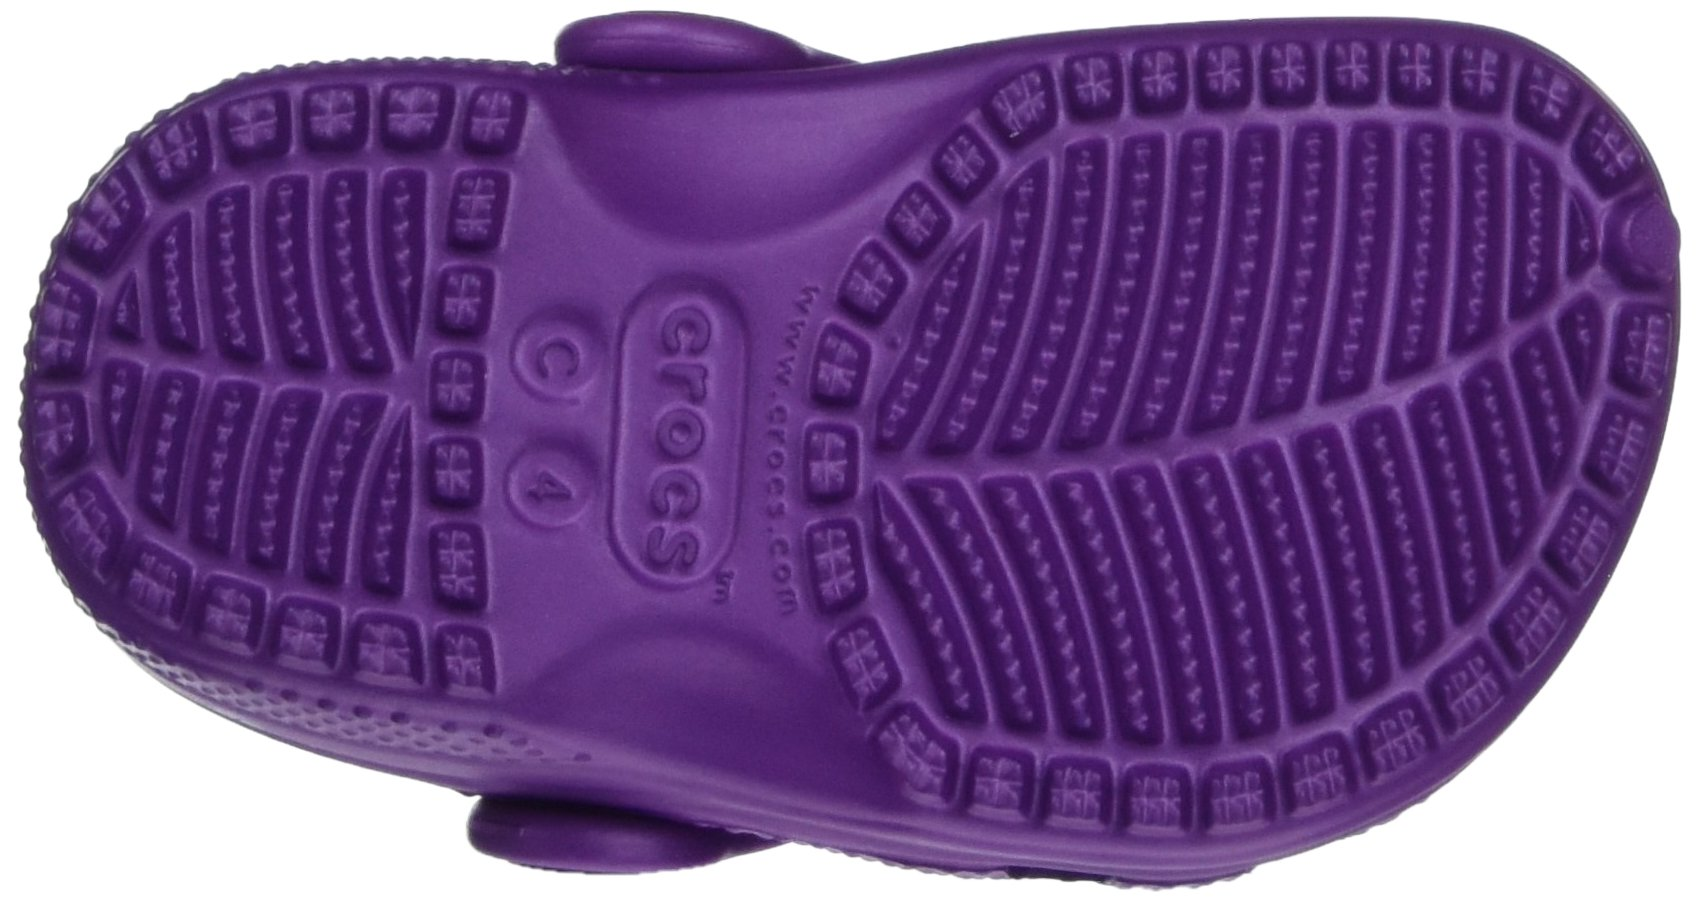 Crocs Kid's Classic Clog K Shoe, Amethyst, 7 M US Toddler by Crocs (Image #3)